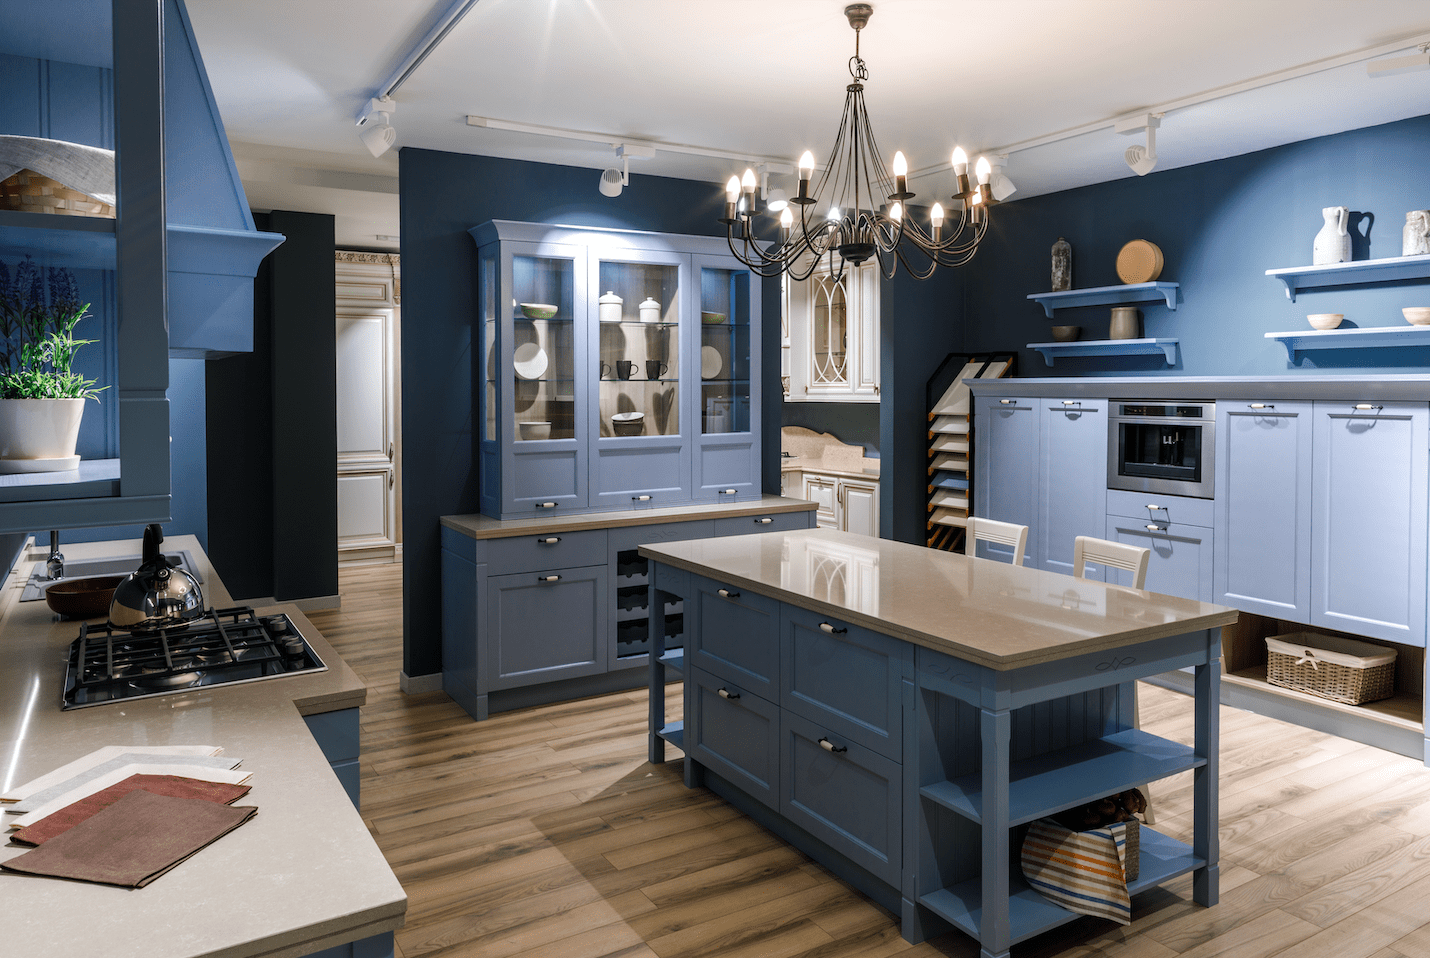 Bergen Granite & Marble - Blue Kitchen Cabinets